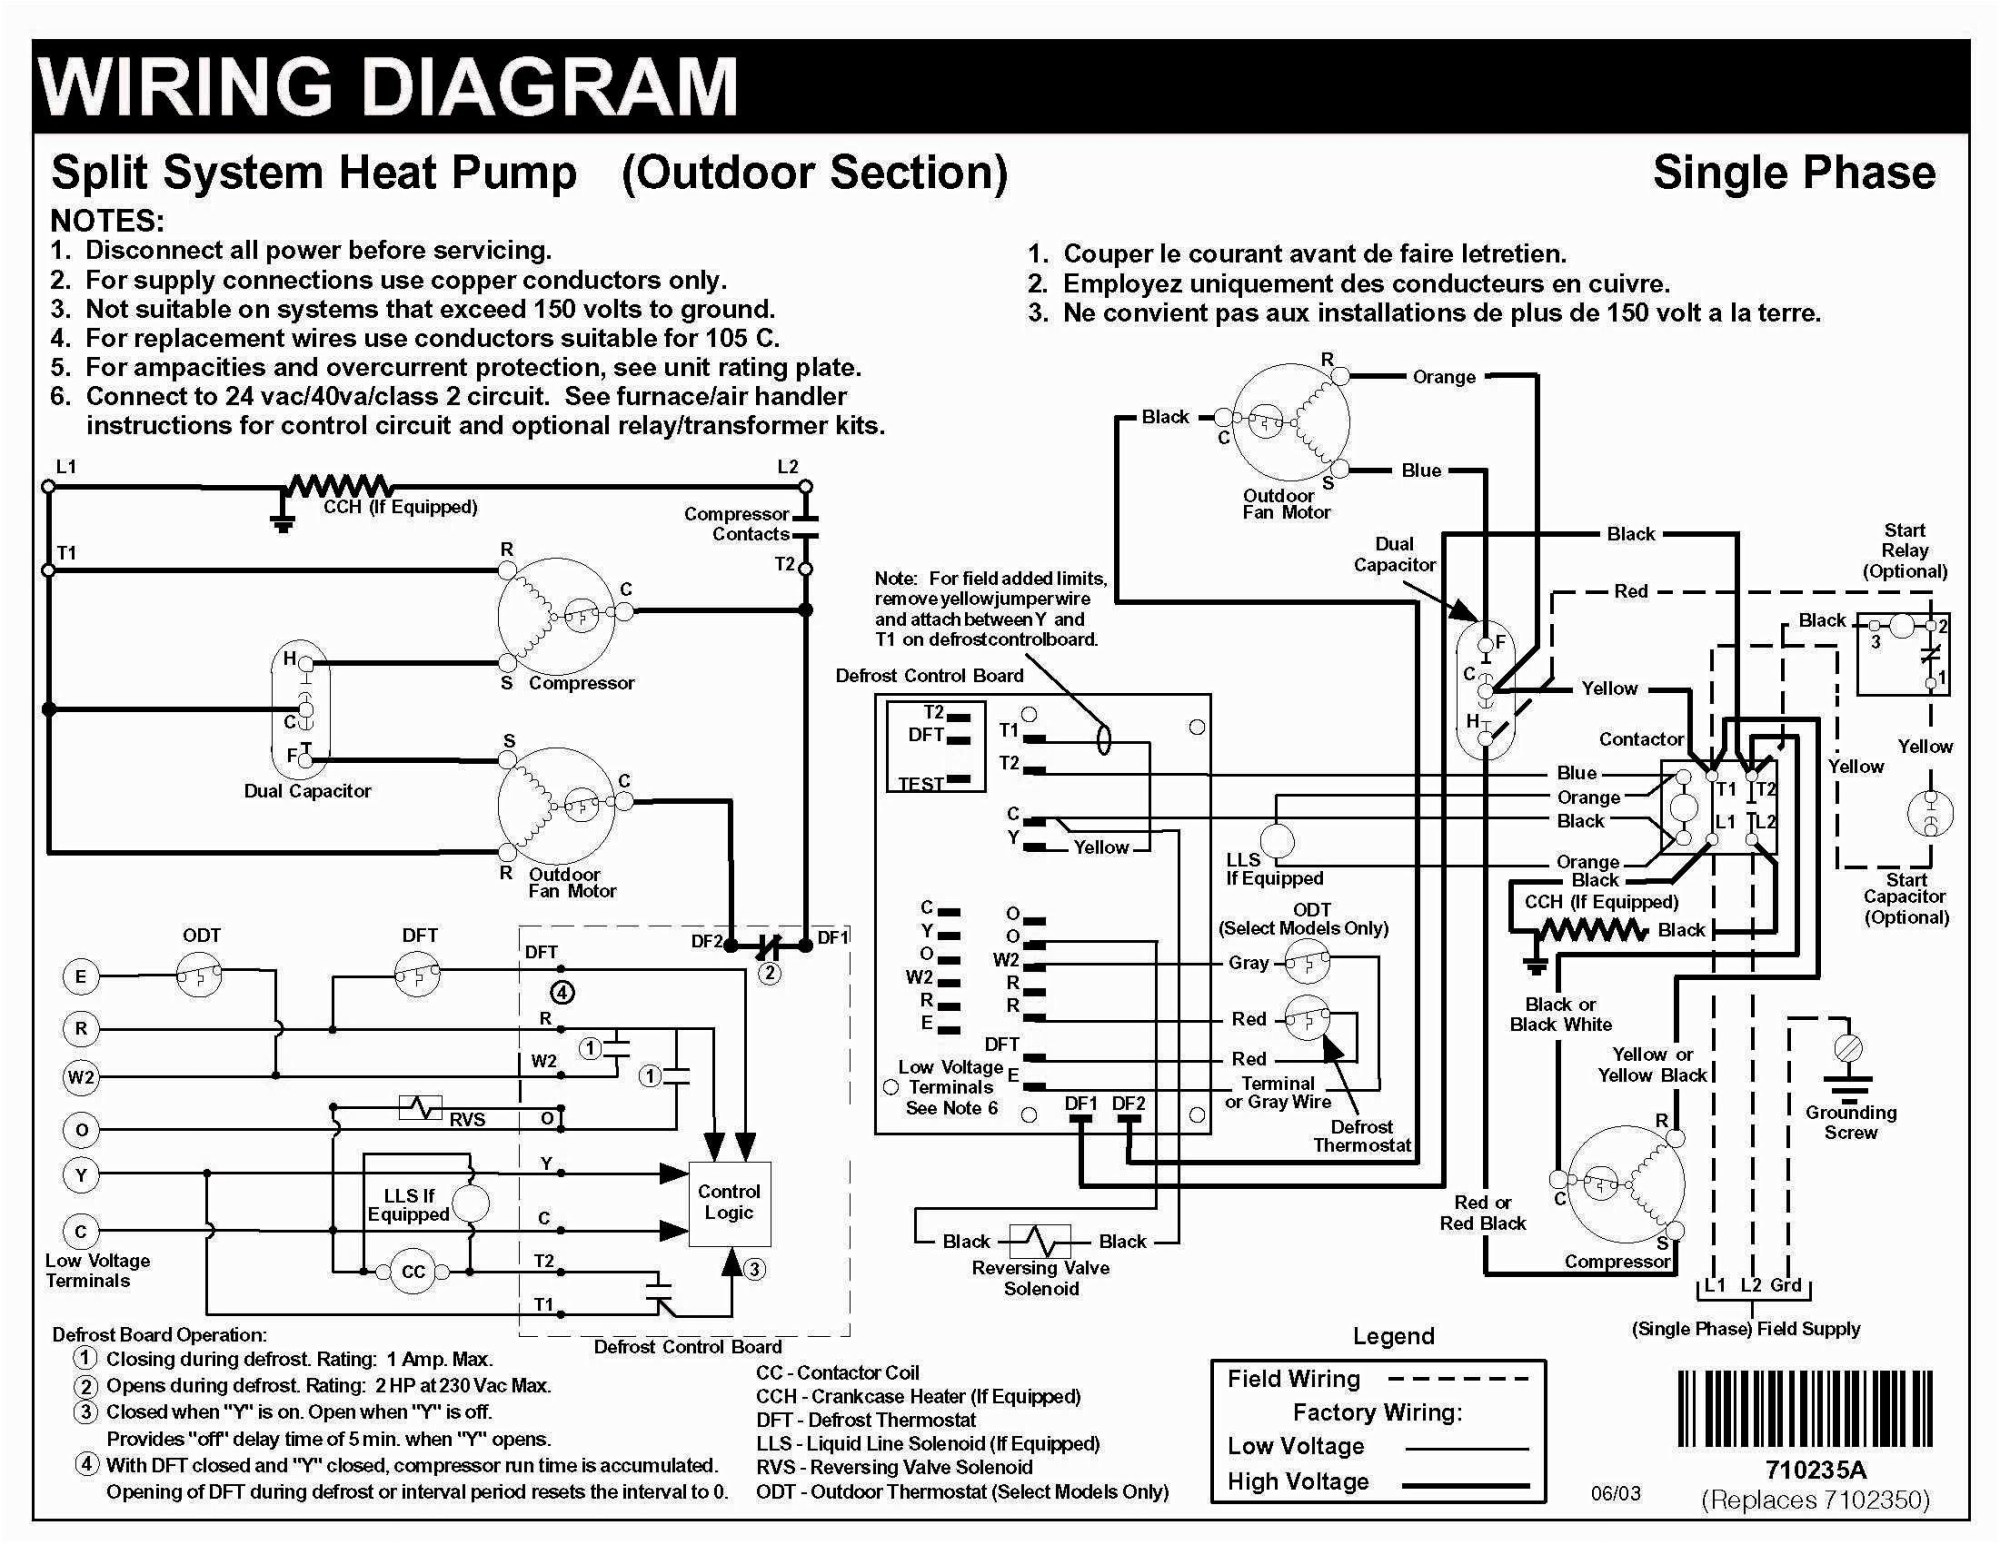 hight resolution of 45 kva transformer wiring diagram wiring diagram 75 kva transformer wiring diagram free picture